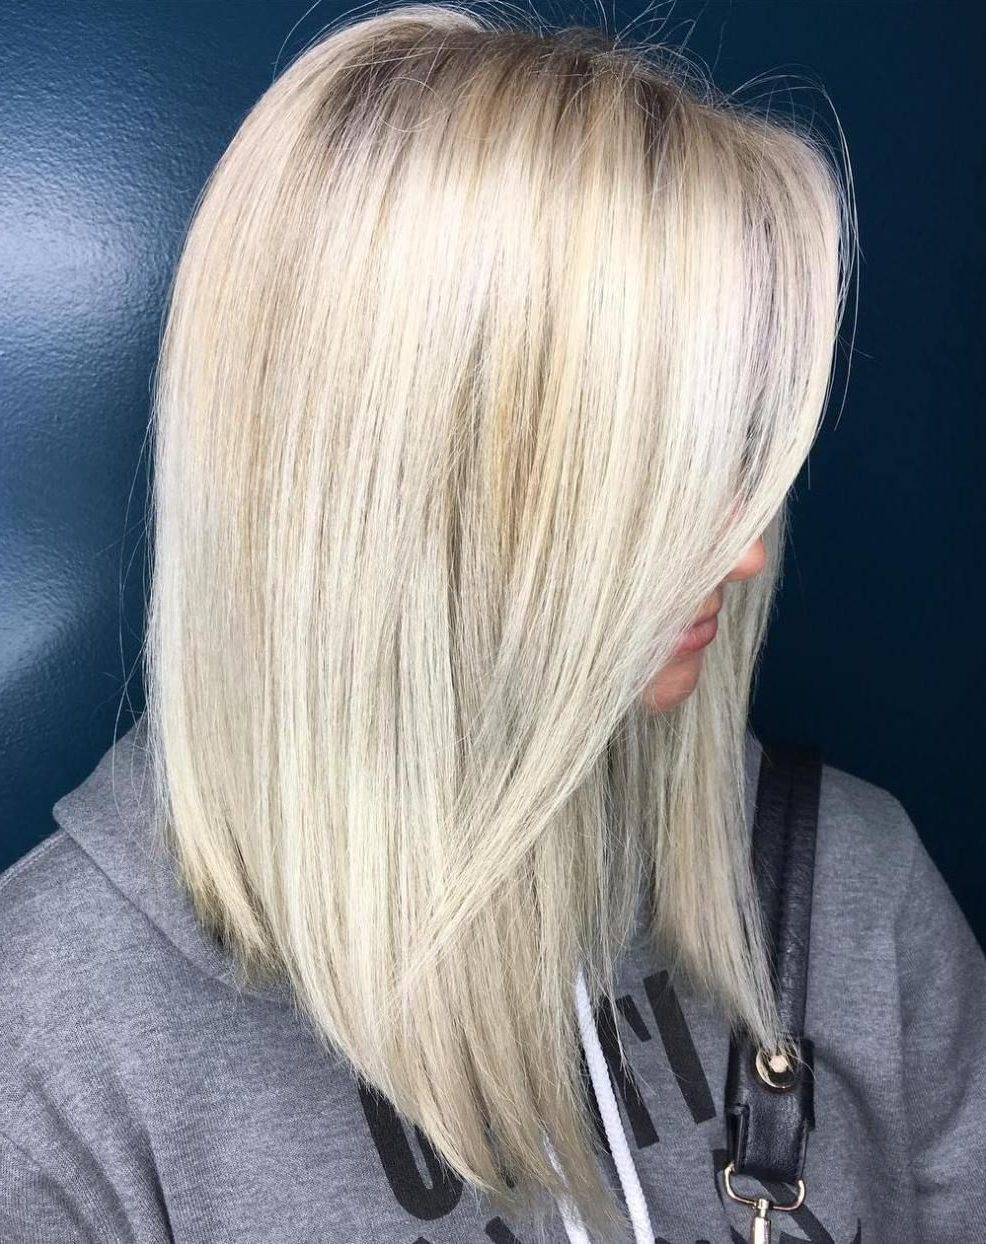 40 Styles With Medium Blonde Hair For Major Inspiration In In Current Blonde Medium Haircuts (View 4 of 20)